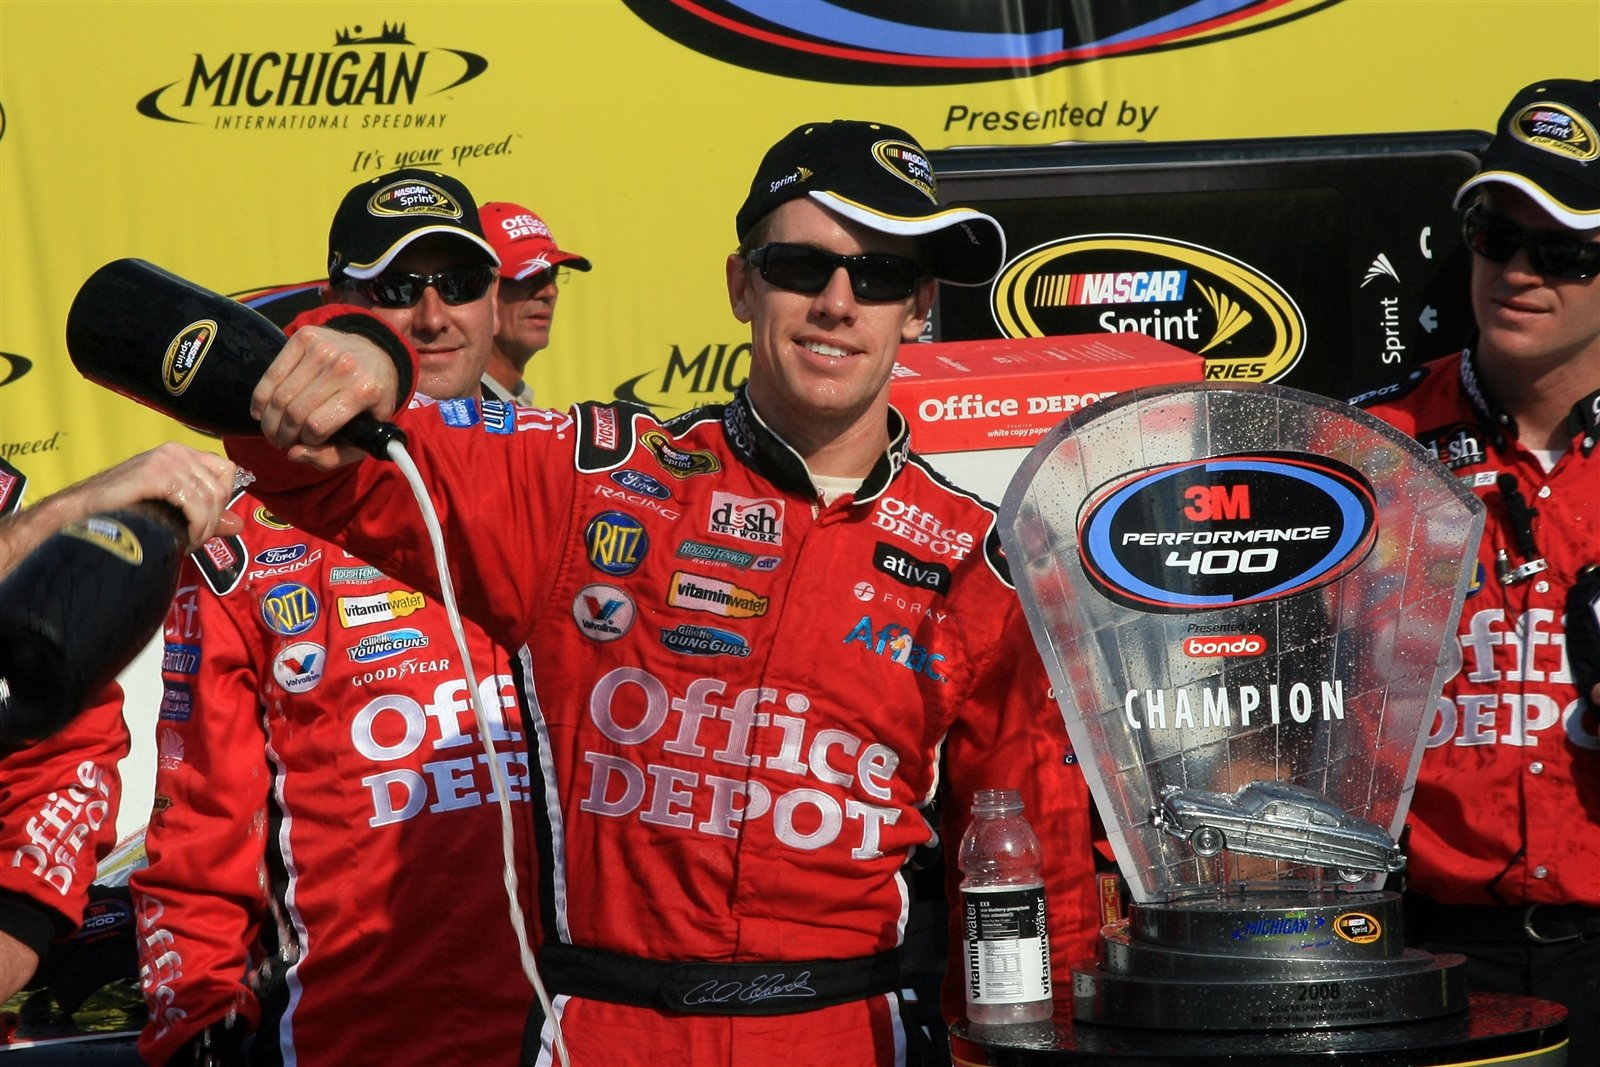 Carl Edwards Retiring from NASCAR as of now